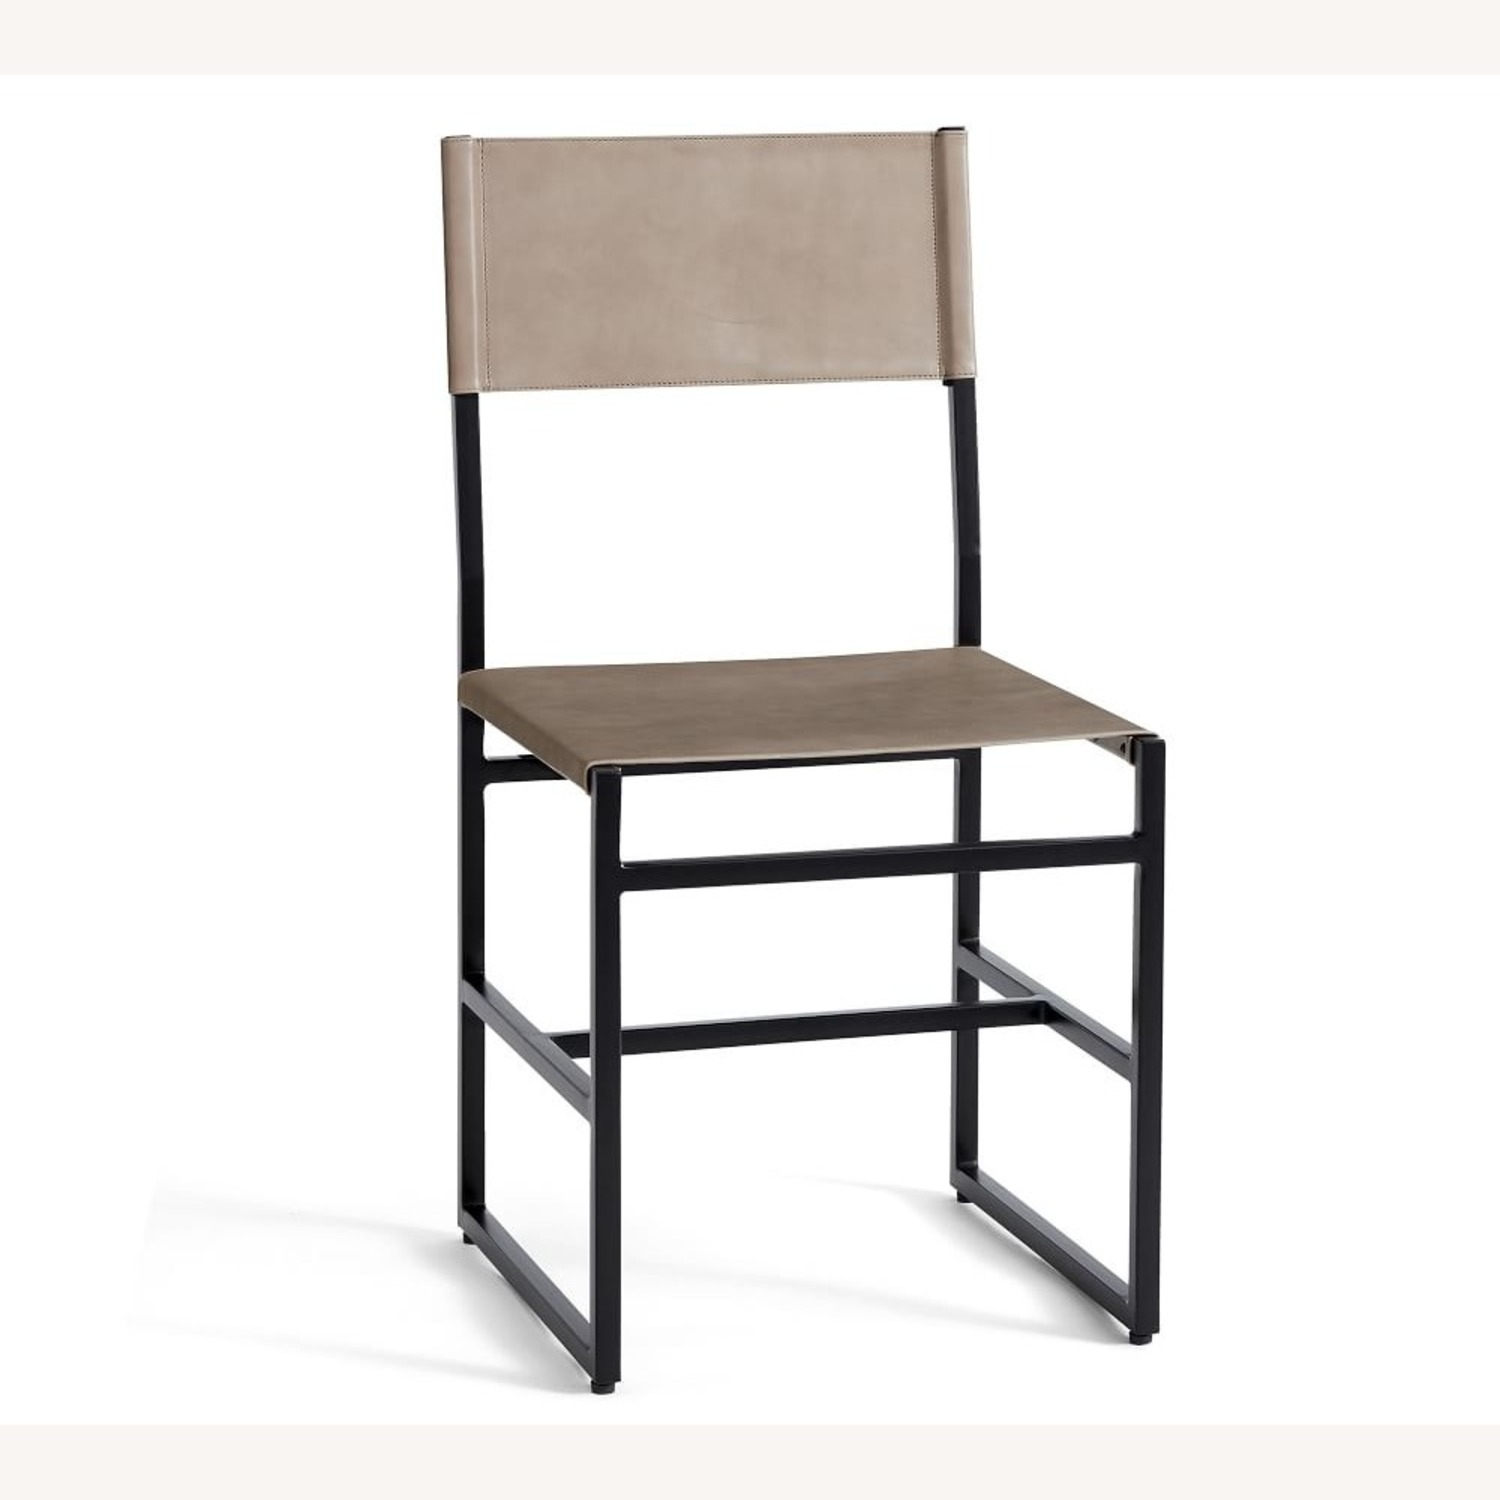 Pottery Barn Hardy Leather Dining Chair - image-3